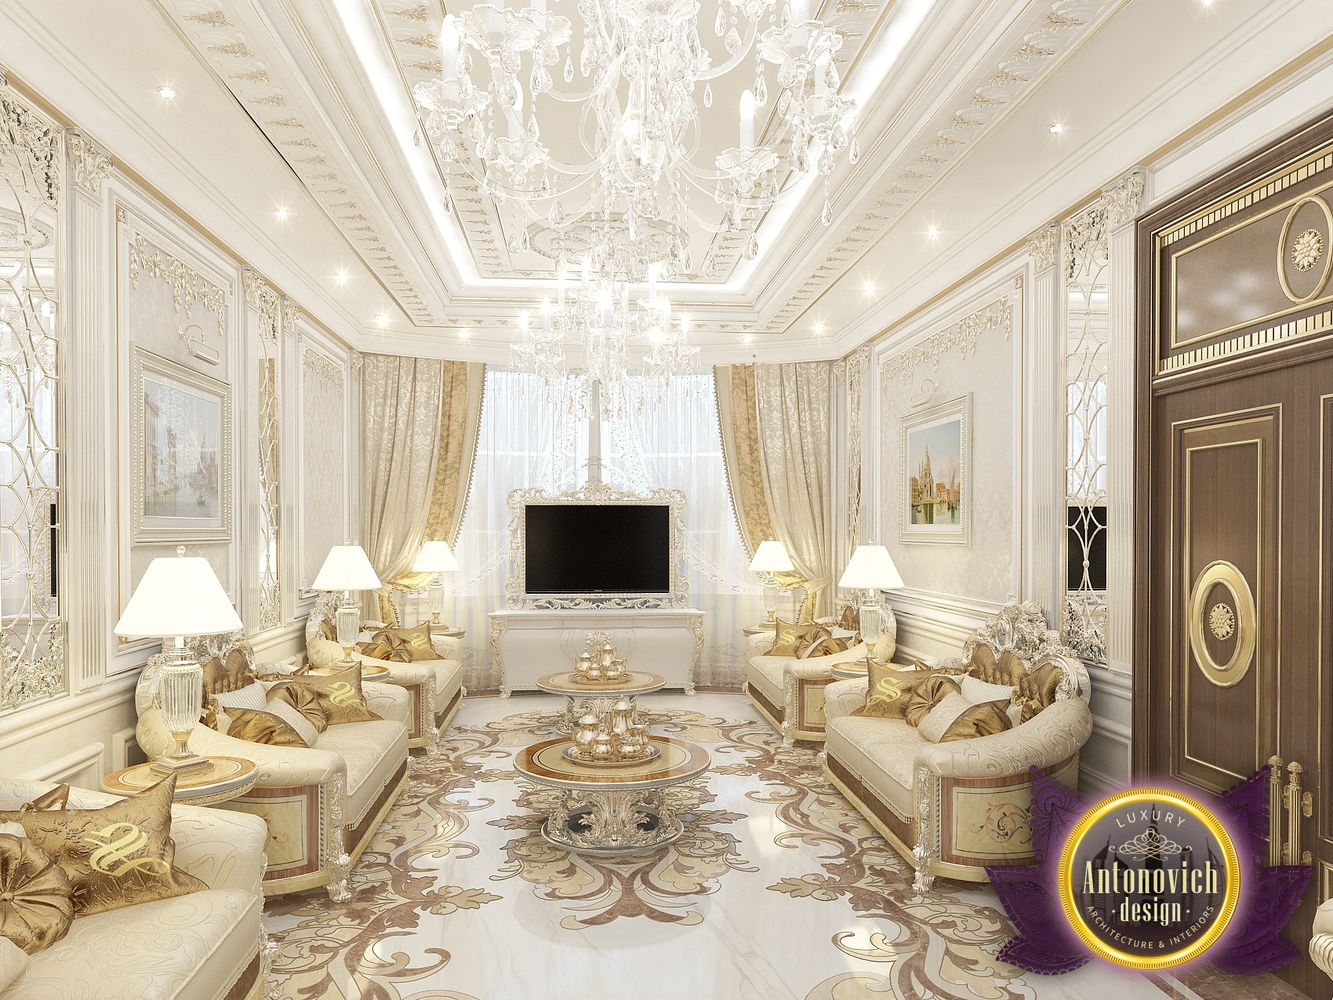 Luxury antonovich design uae living room interior design for Luxury interior design